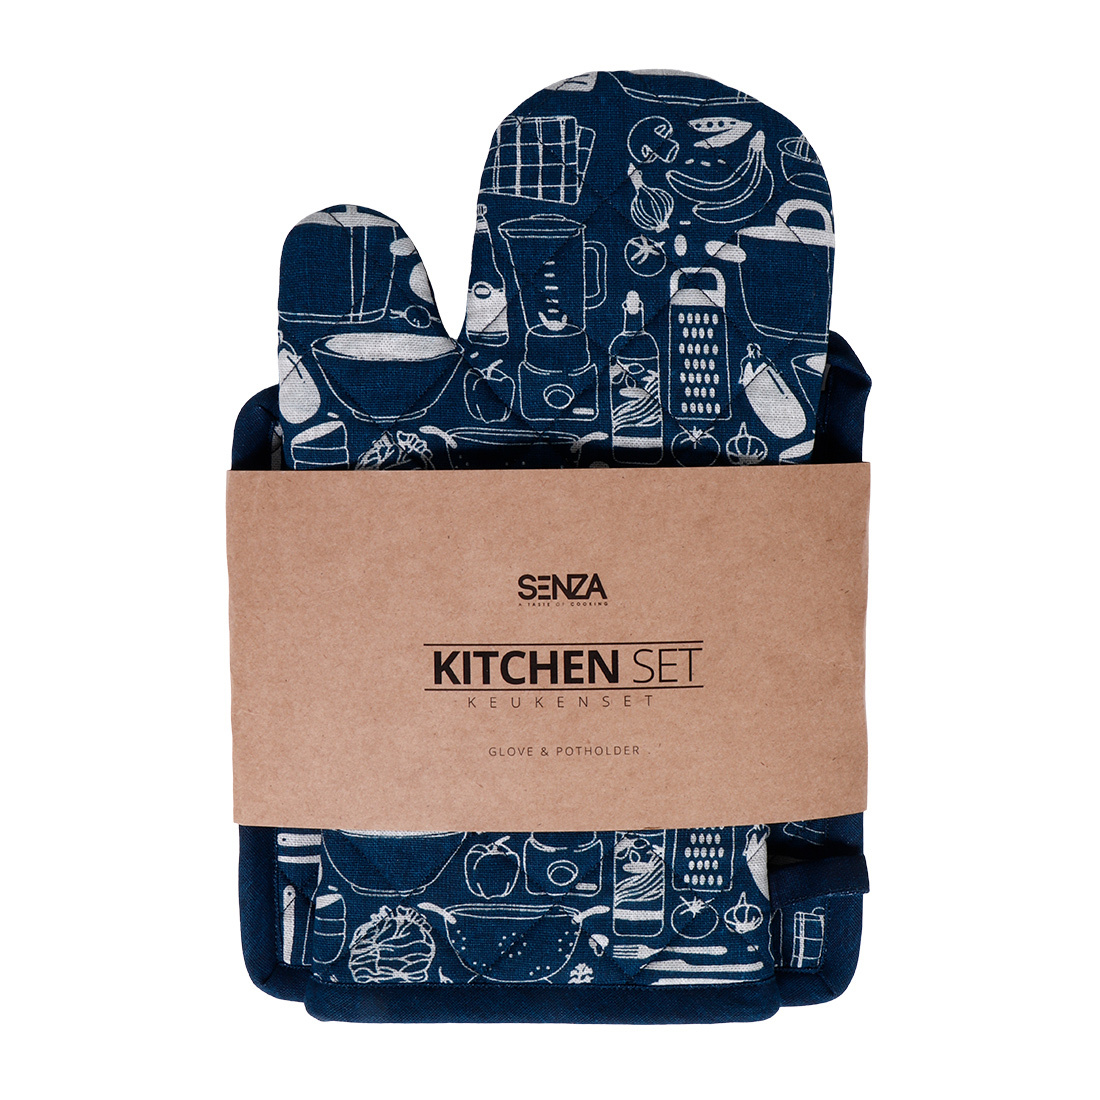 SENZA Glove & Potholder Blue